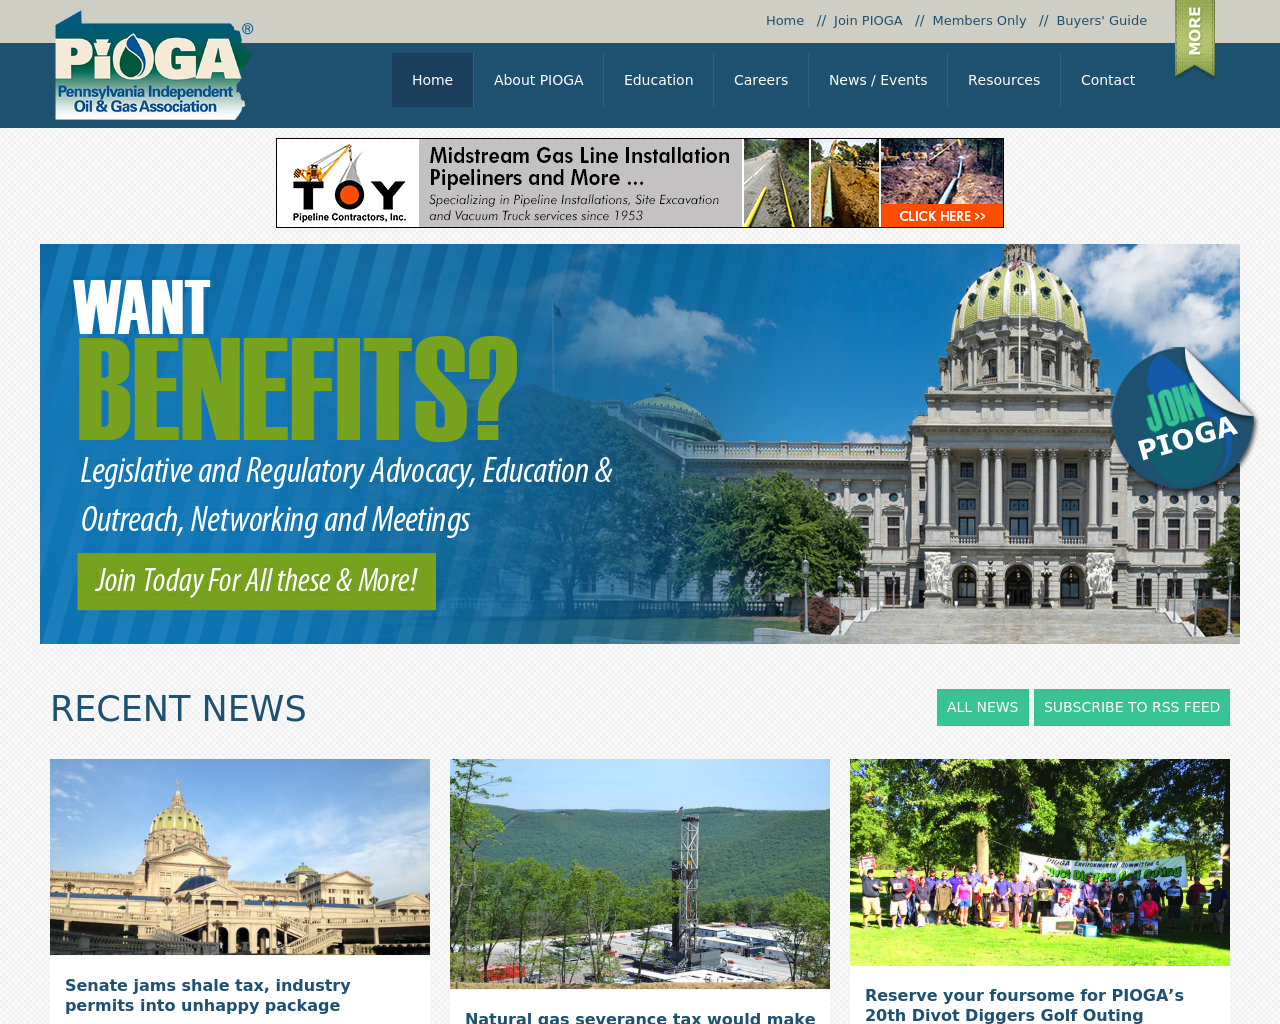 PIOGA-Advertising-Reviews-Pricing